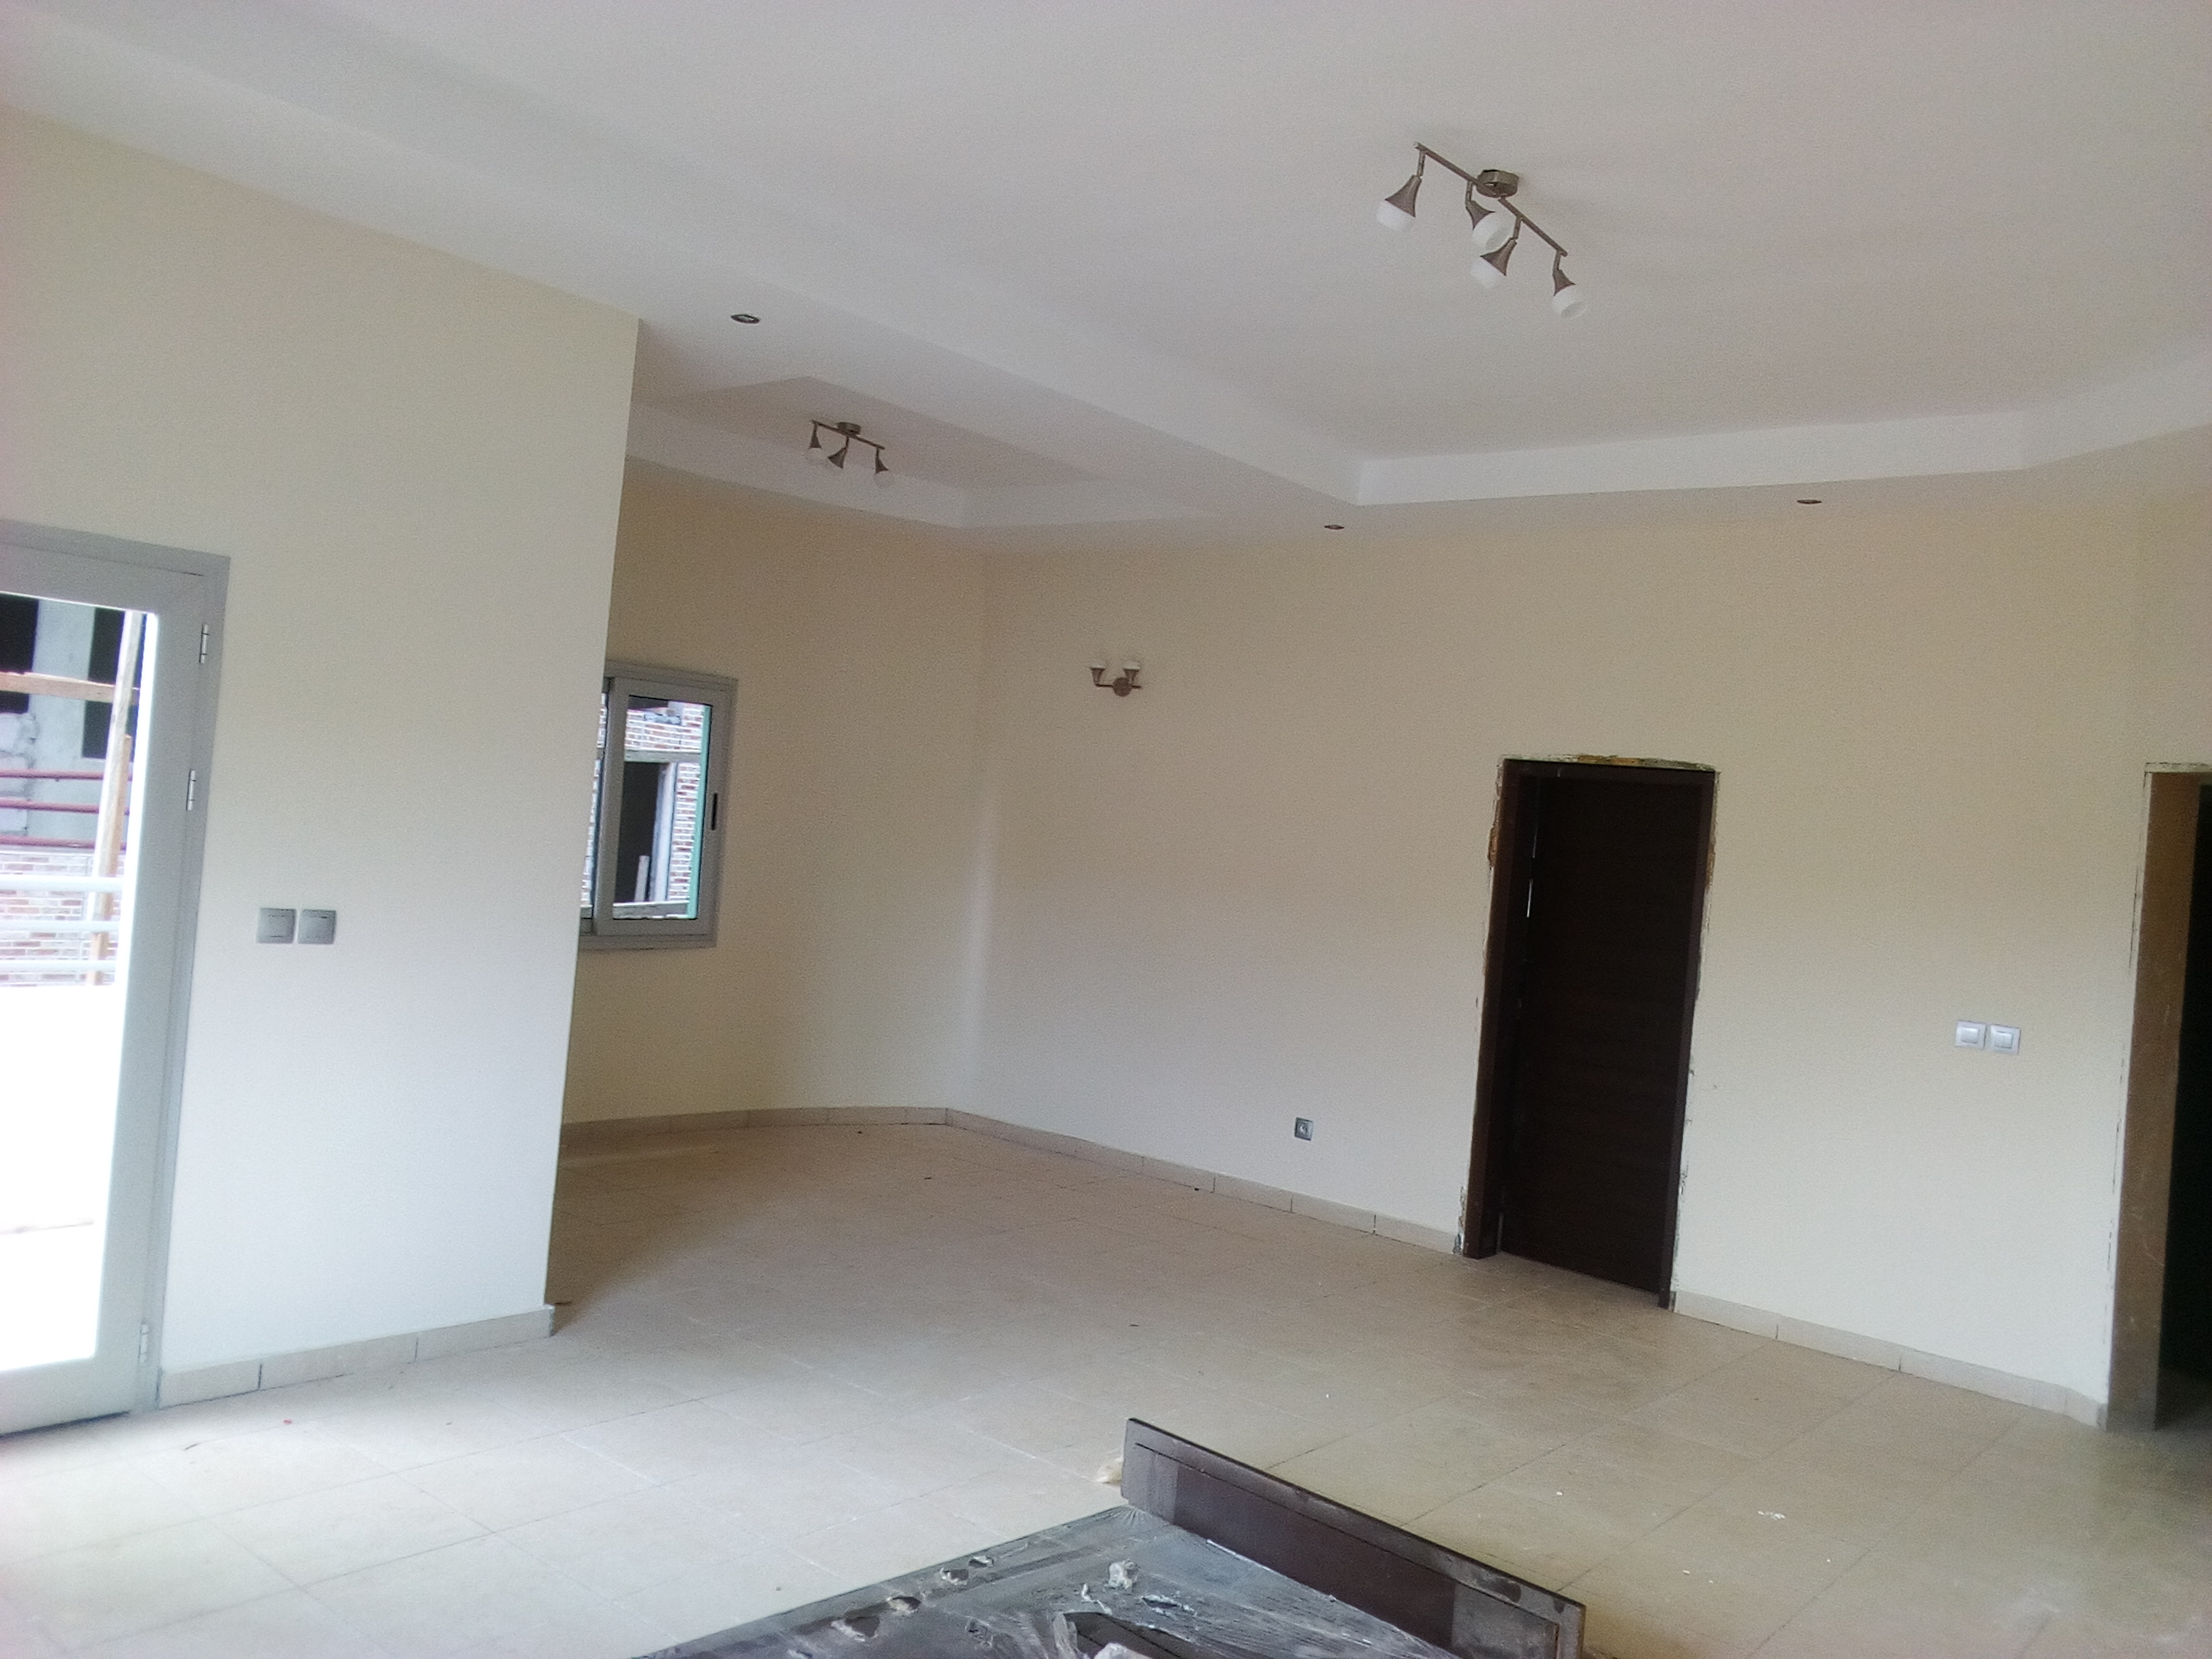 Apartment to rent - Yaoundé, Mfandena, avenue foe - 1 living room(s), 2 bedroom(s), 3 bathroom(s) - 300 000 FCFA / month